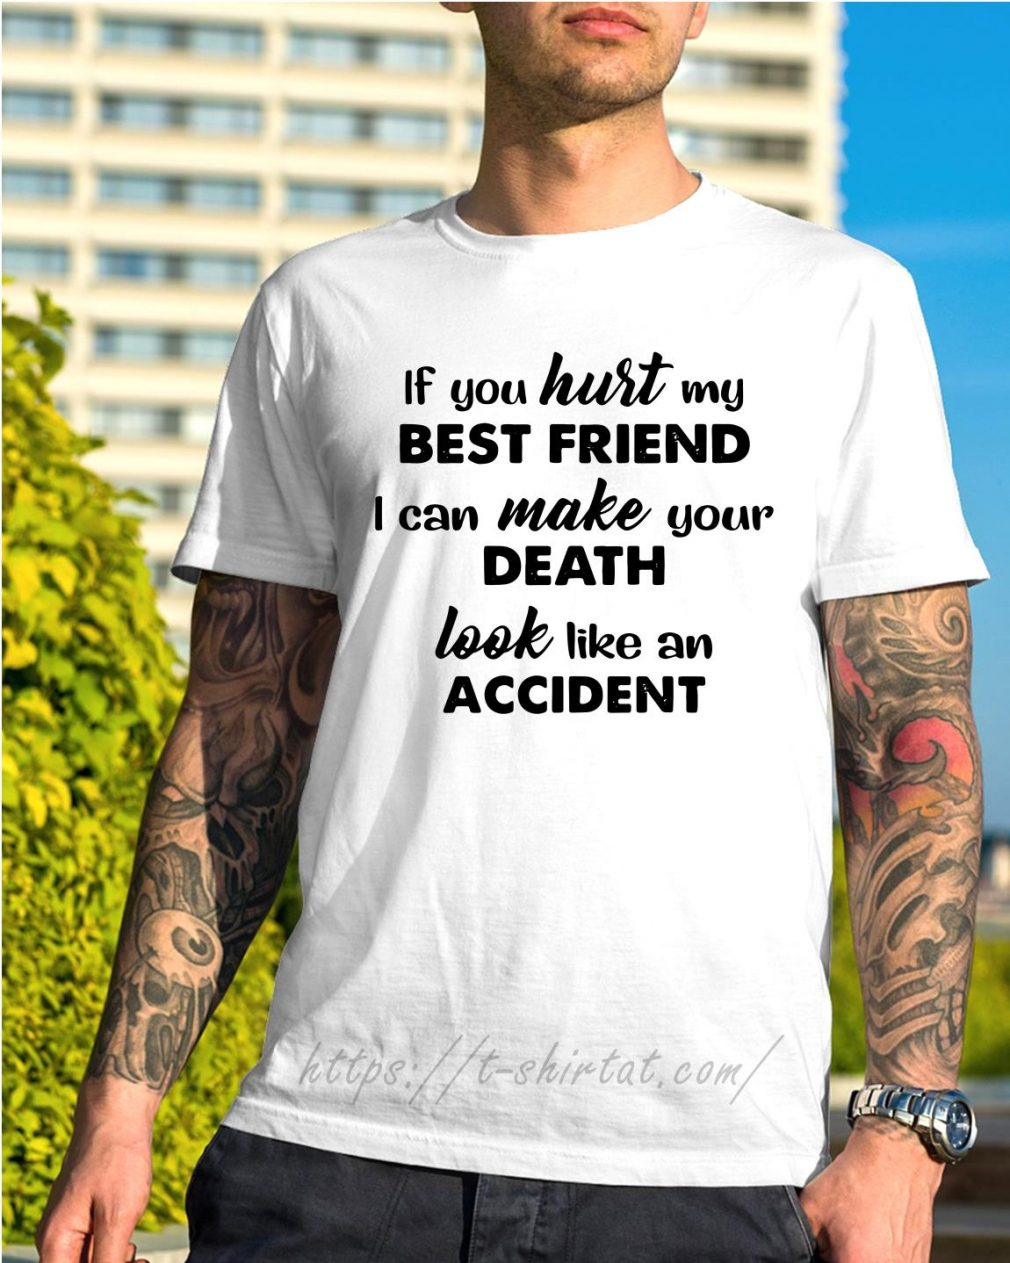 If you hurt my best friend I can make your death look like an accident shirt